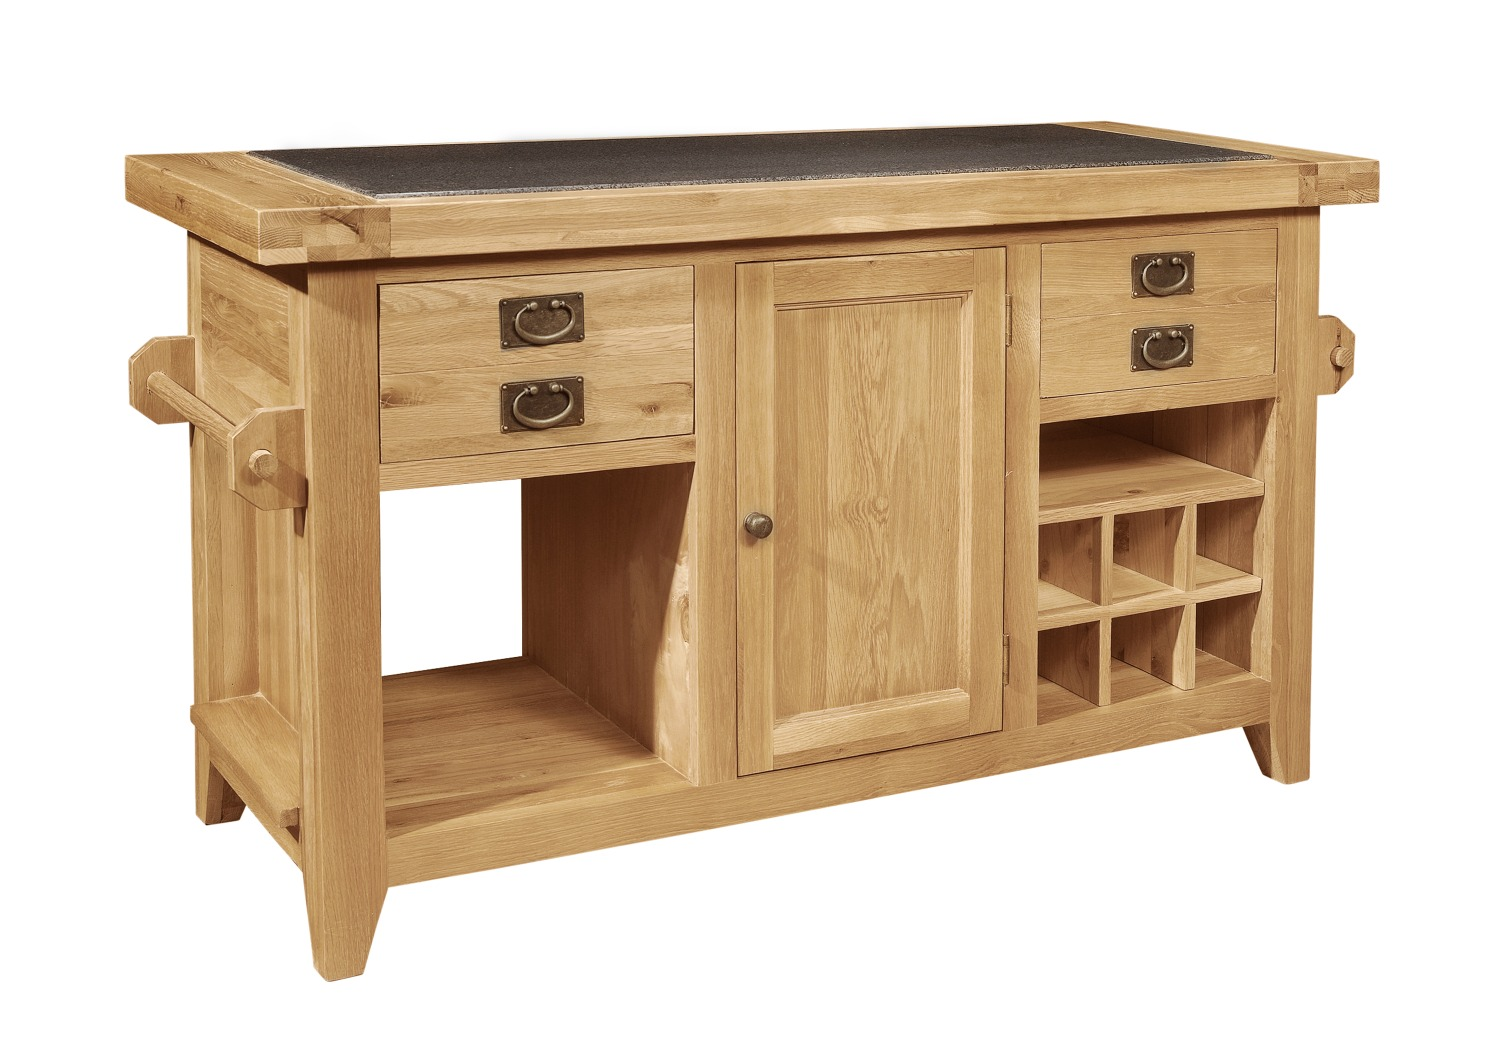 Panama solid oak furniture large granite top kitchen for Marble topped kitchen island